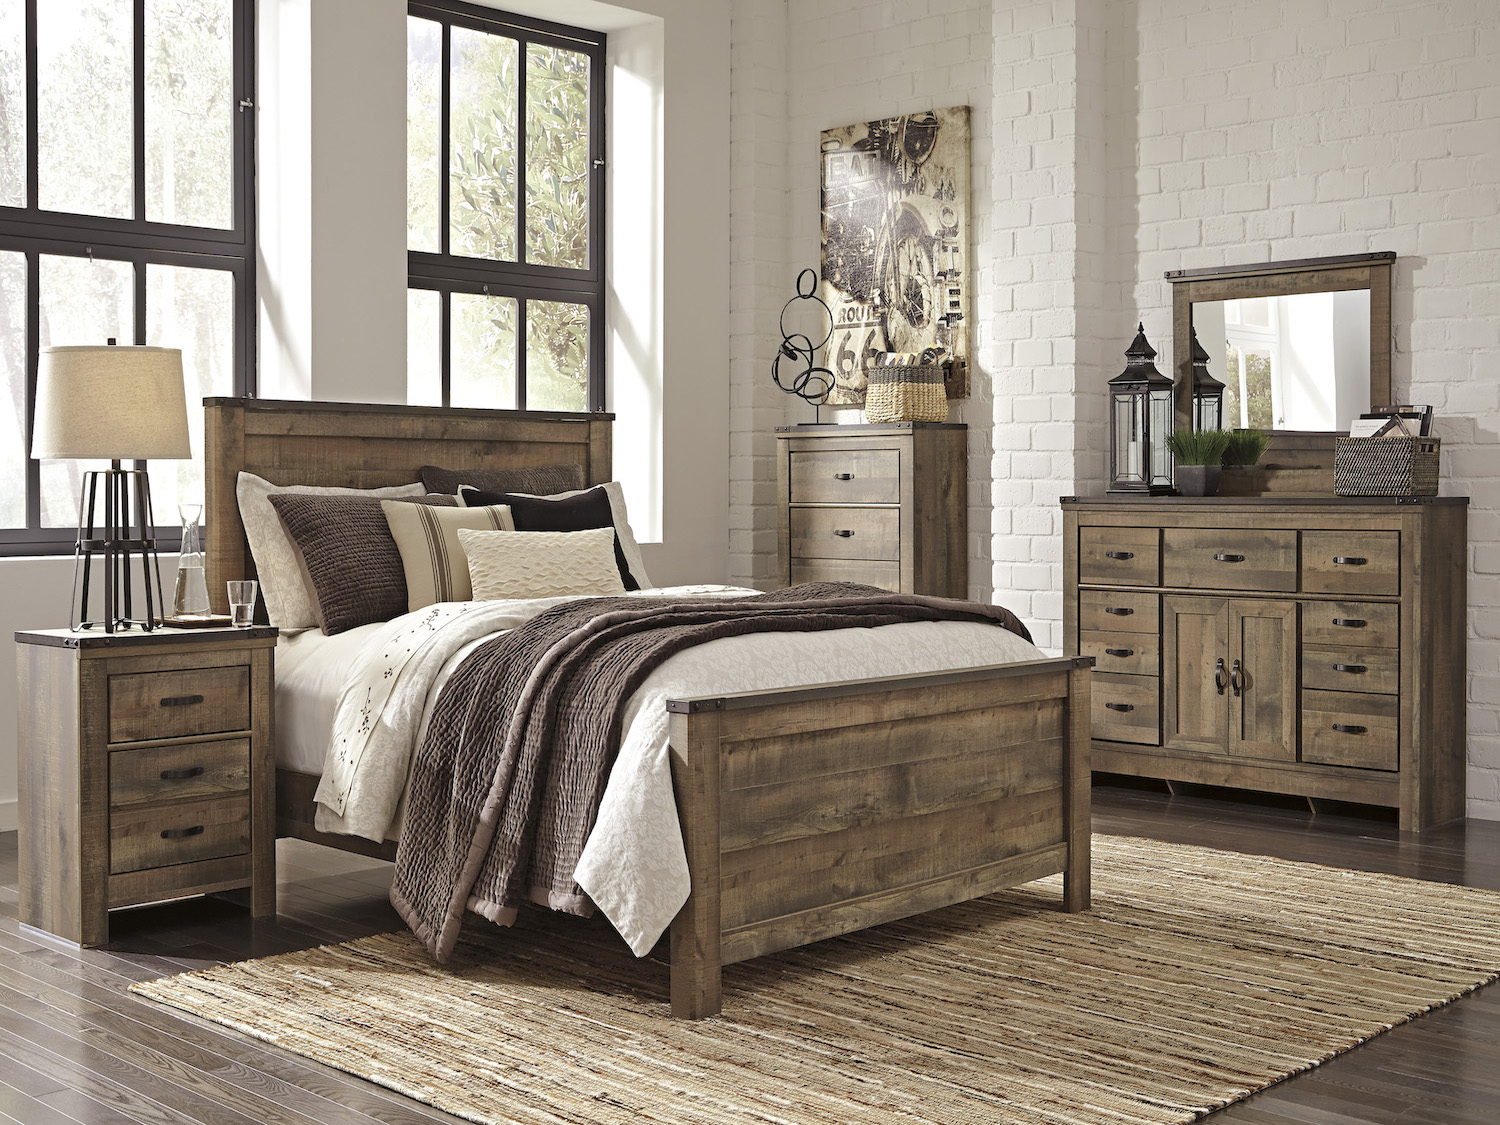 Trinell 6 PC bedroom set, B446, Bedroom Sets, Trinell 6 PC bedroom set from Ashley by Midha Furniture serving Brampton, Mississauga, Etobicoke, Toronto, Scraborough, Caledon, Cambridge, Oakville, Markham, Ajax, Pickering, Oshawa, Richmondhill, Kitchener, Hamilton, Cambridge, Waterloo and GTA area